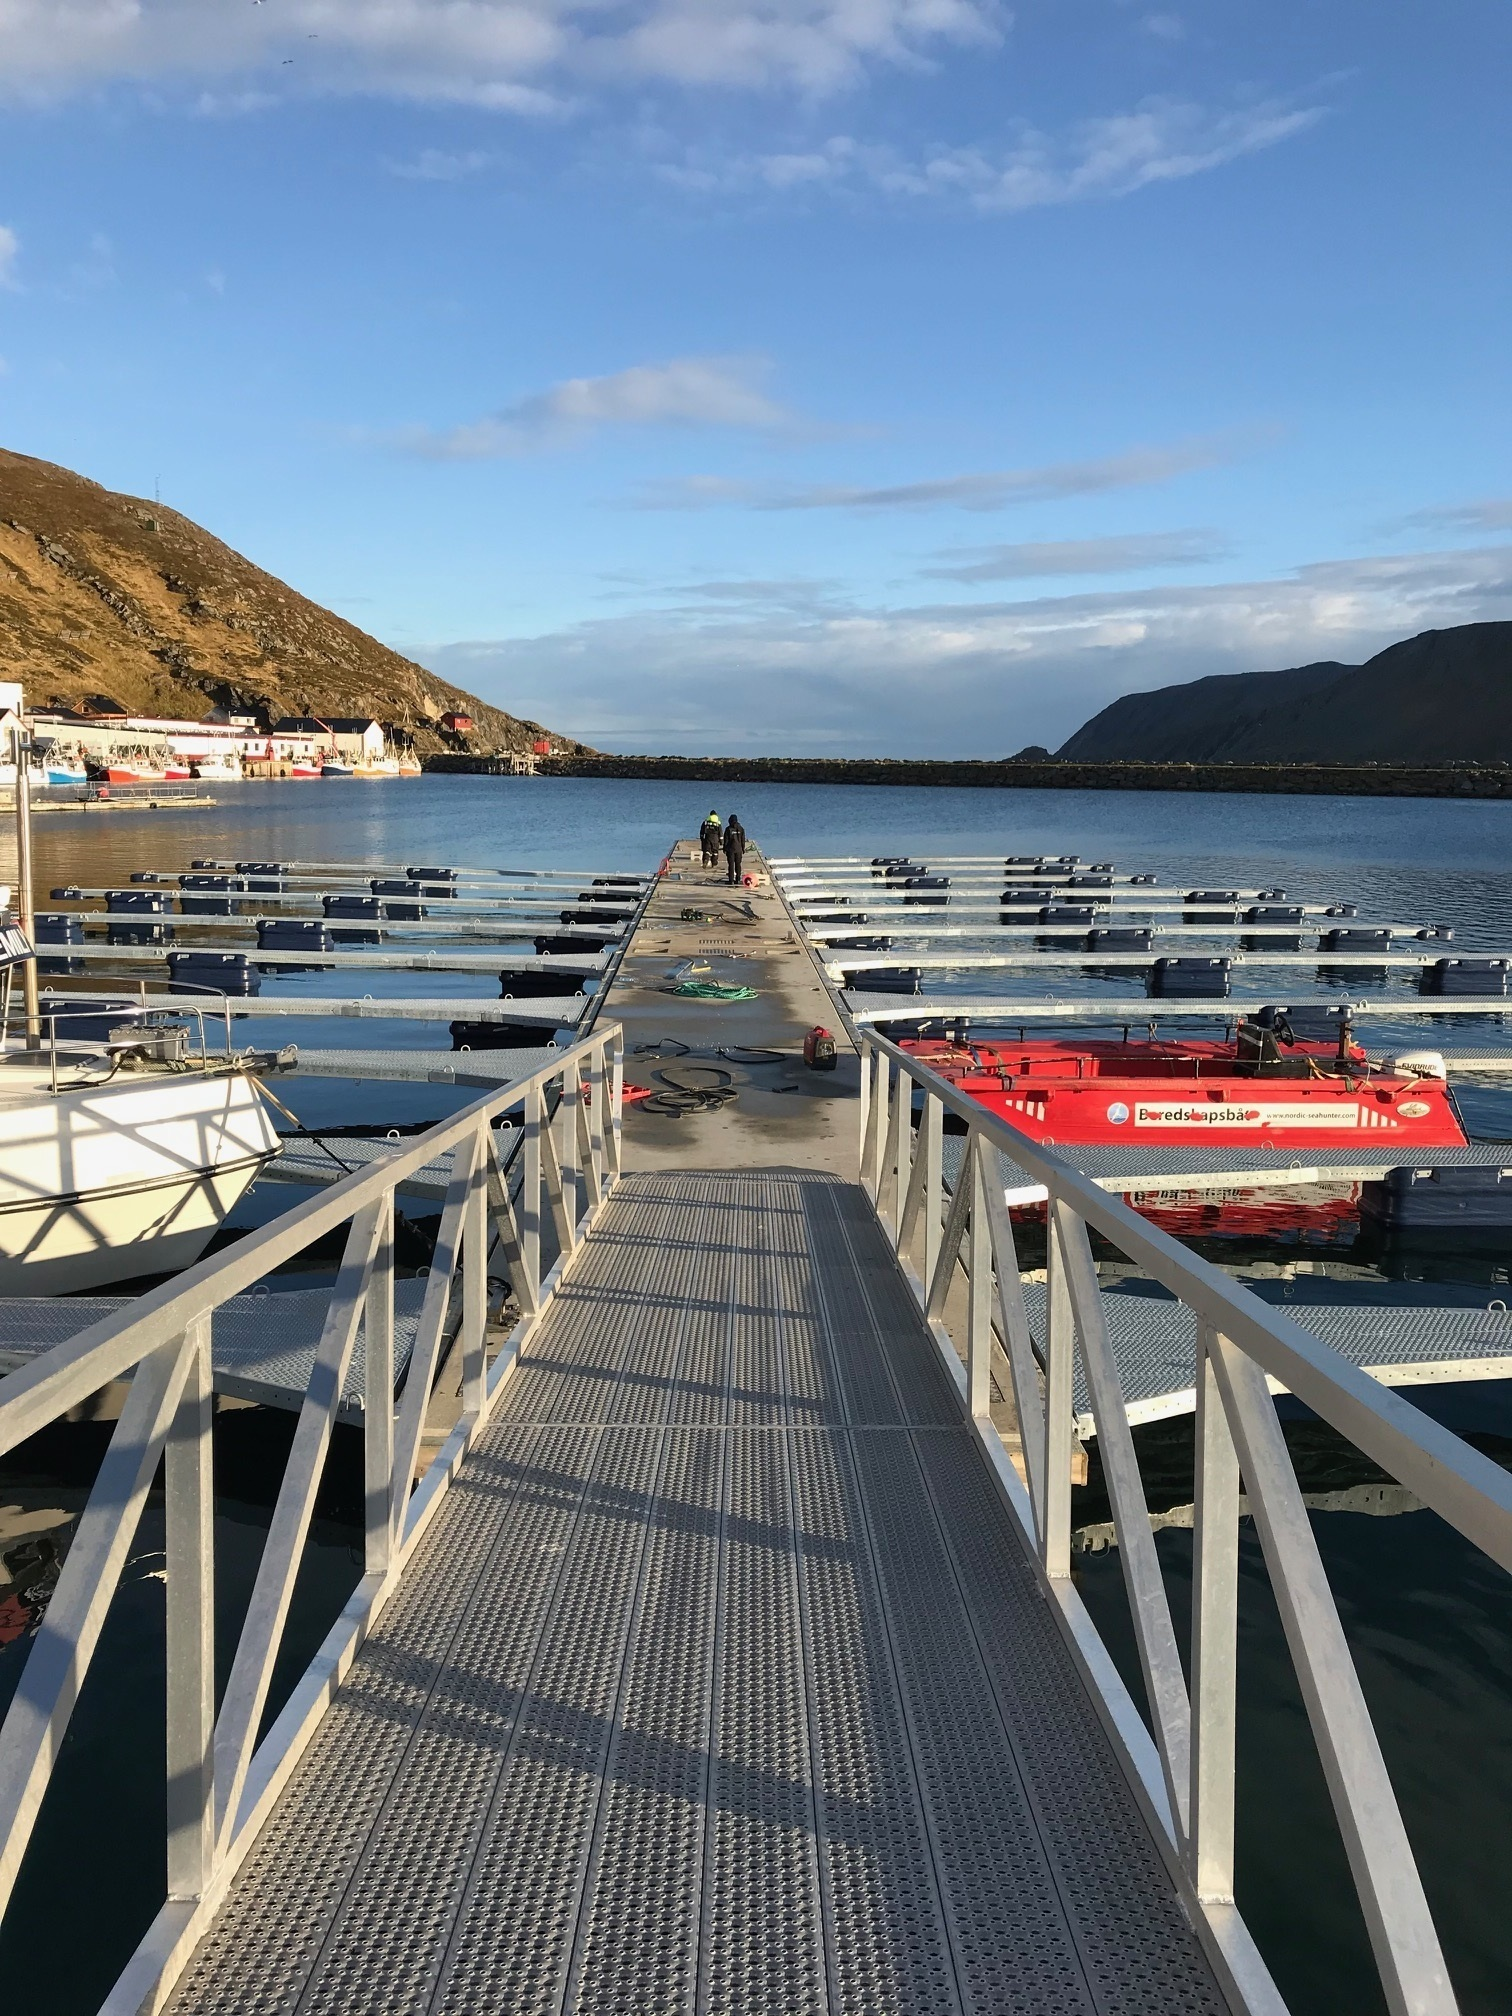 https://marinasolutions.no/uploads/Nordkappregionen-havn-Skarsvåg-2018-4.jpg